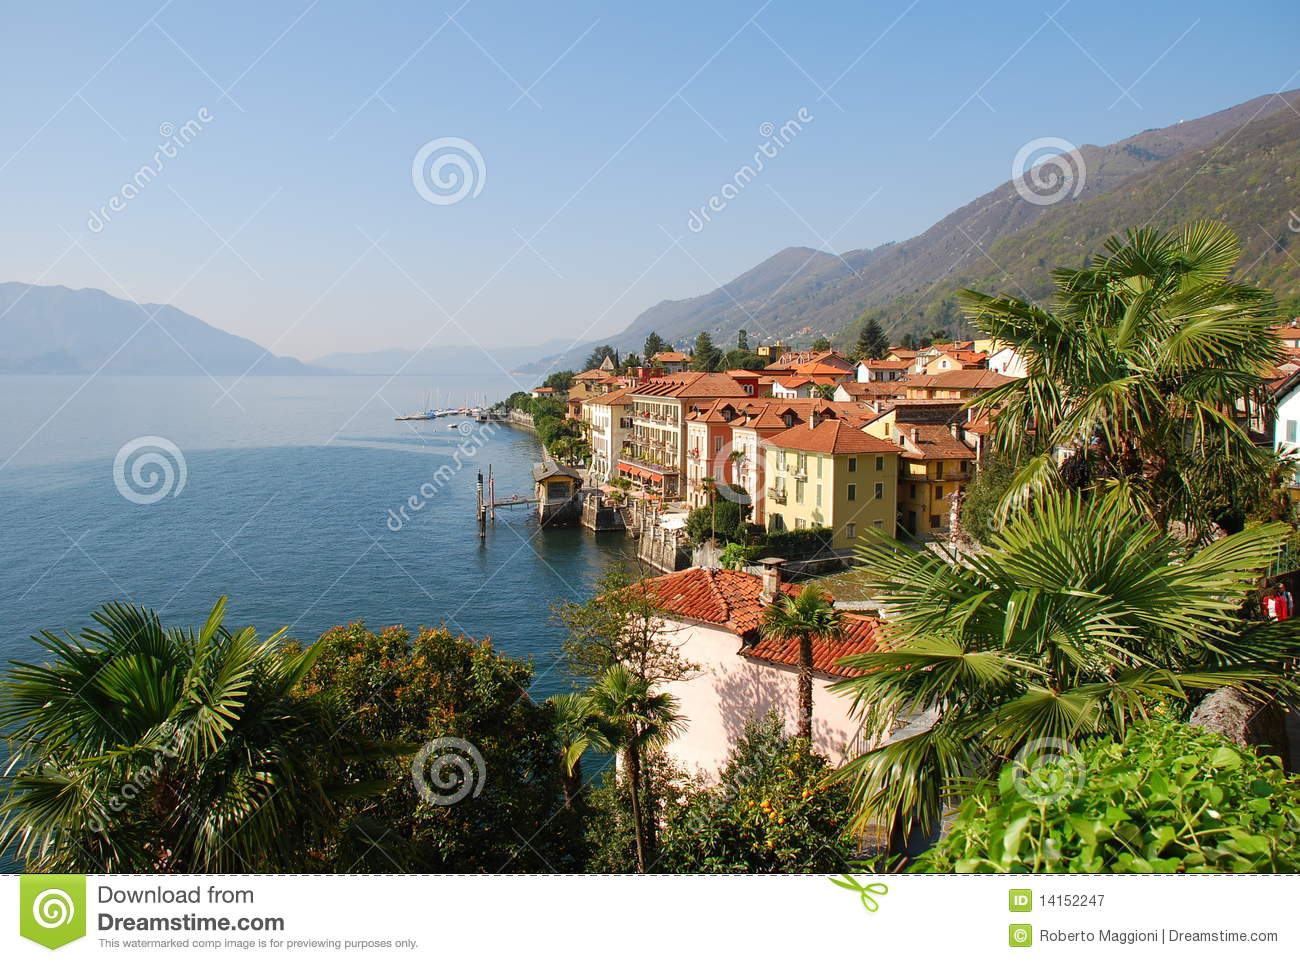 cannero riviera at lago maggiore italy stock image. Black Bedroom Furniture Sets. Home Design Ideas